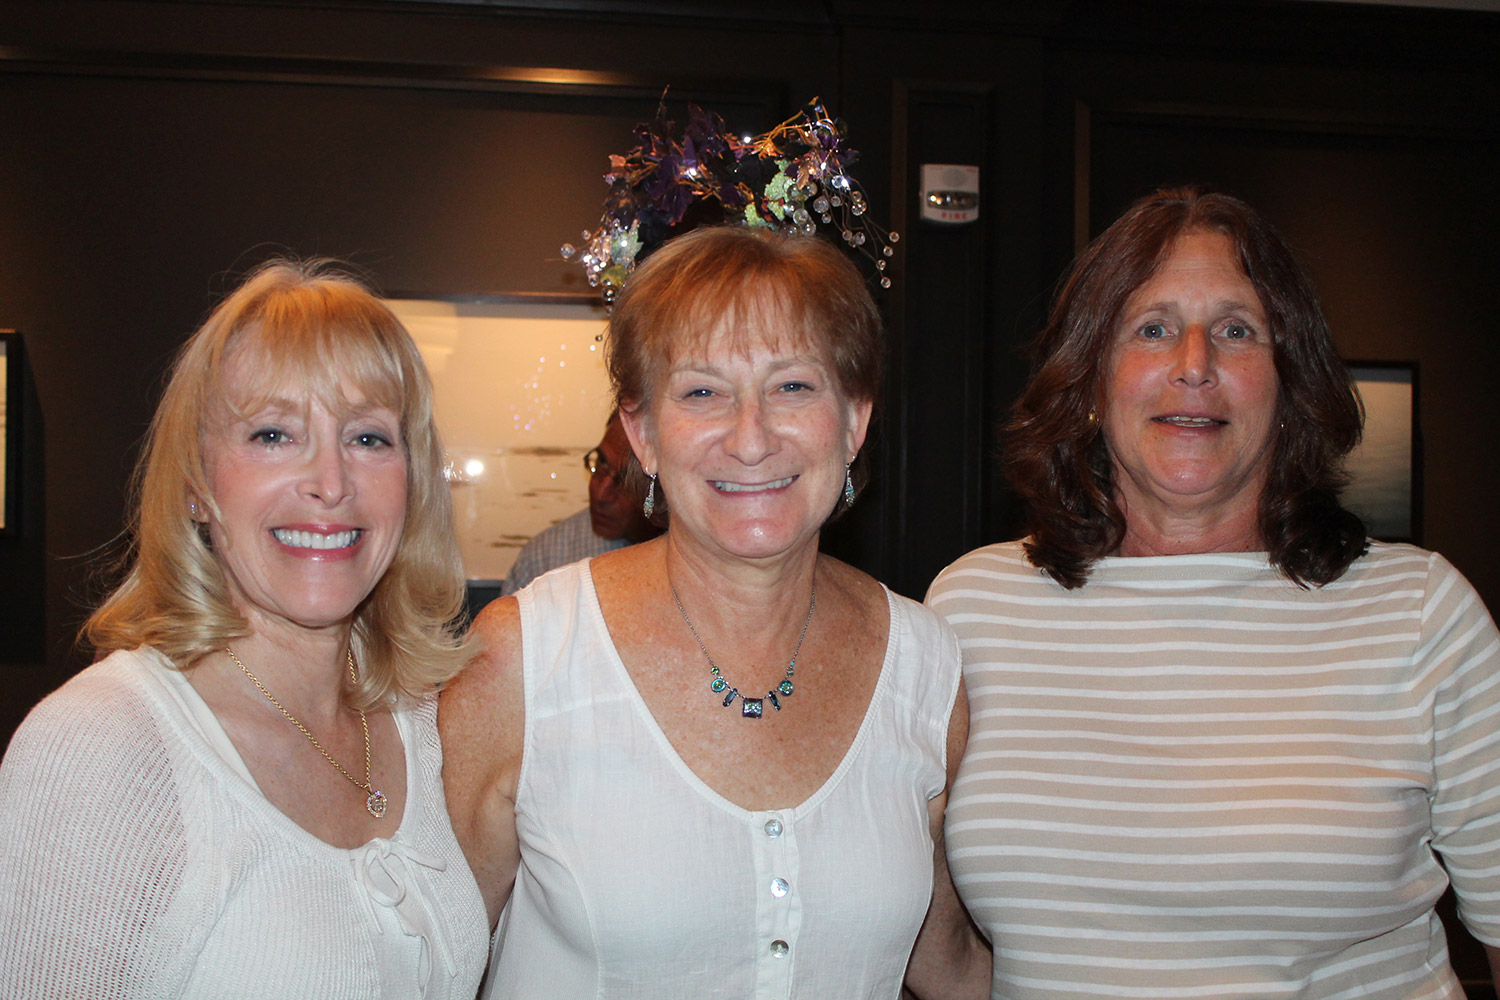 jewish single women in cumberland foreside 325 kind hearted jobs available on indeedcom apply to jobs at oaks senior living, horizon air, kamp kiwanis, st vincent de paul thrift store, the mooring on foreside.